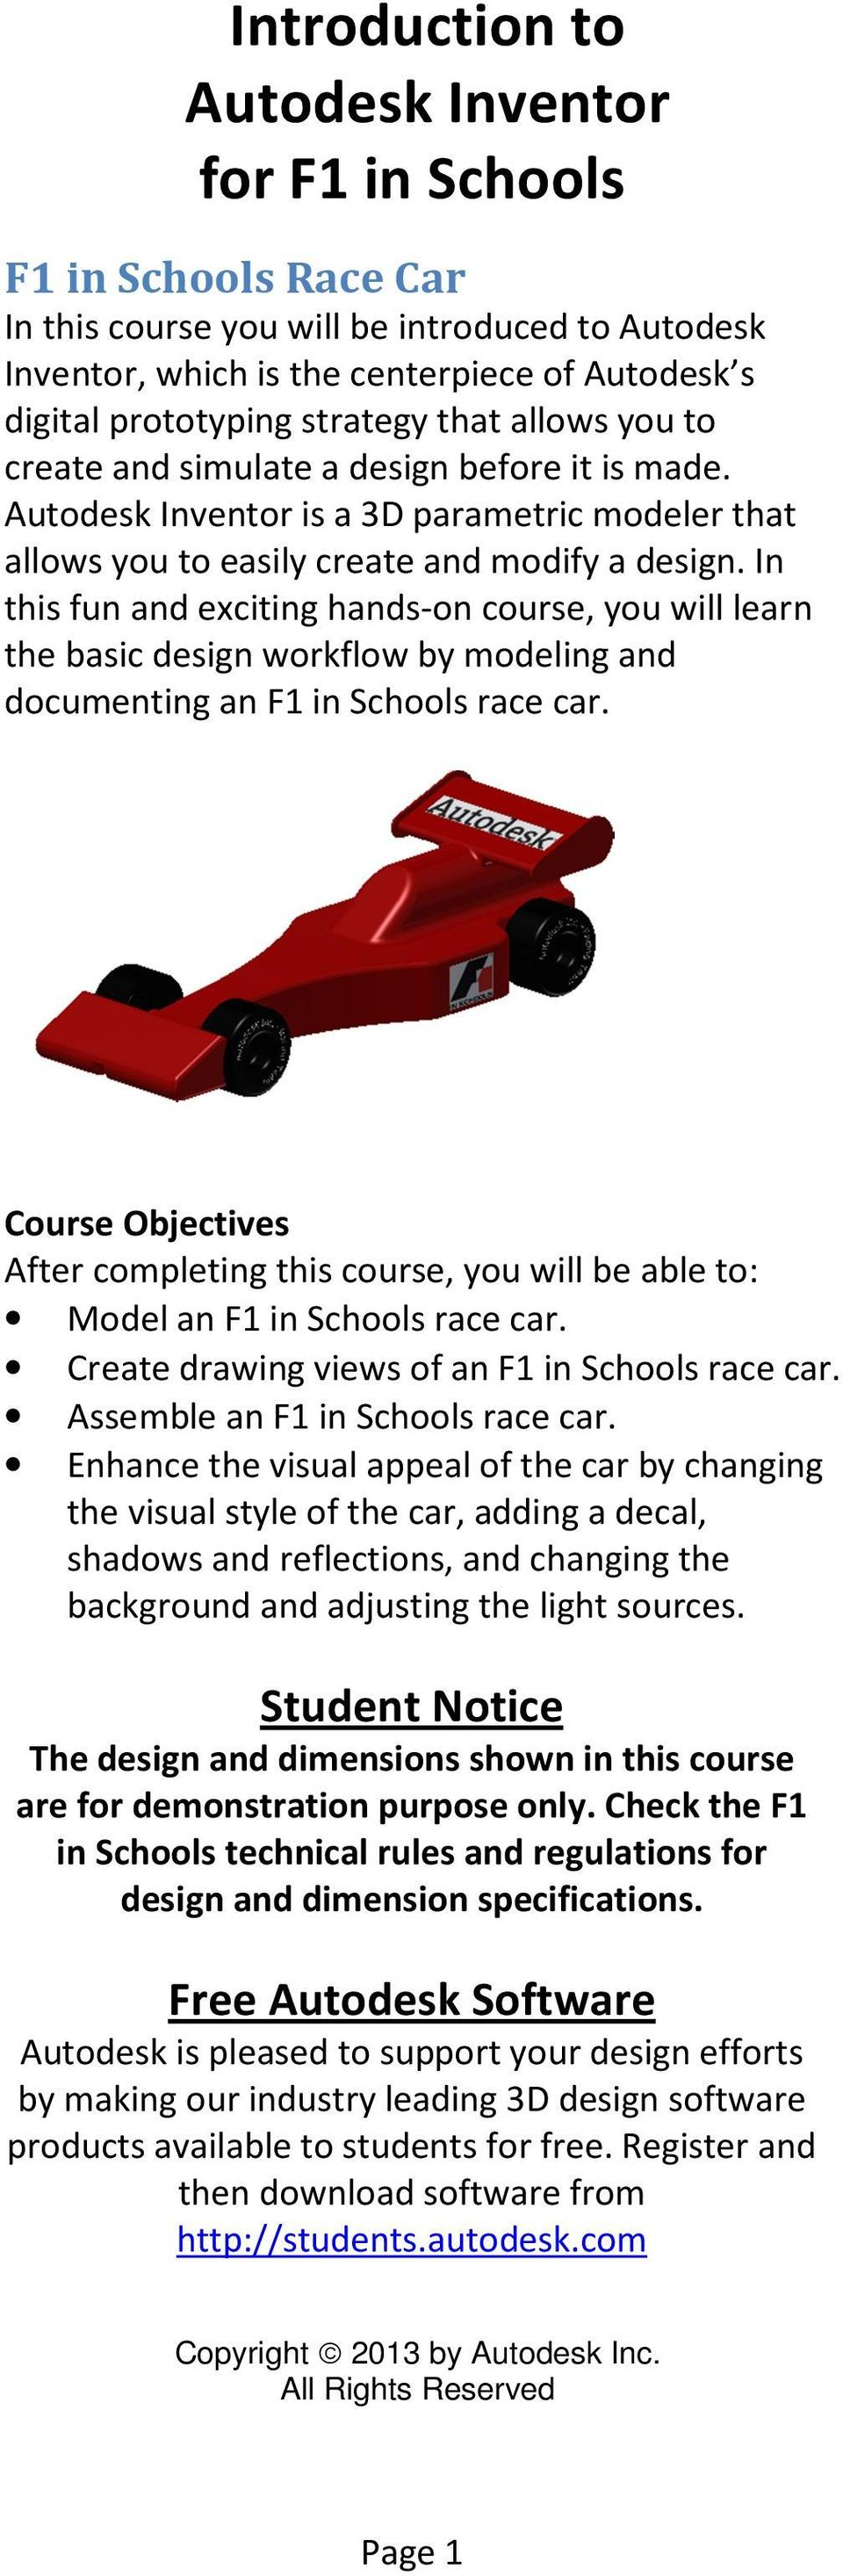 Introduction To Autodesk Inventor For F1 In Schools Pdf Free Download